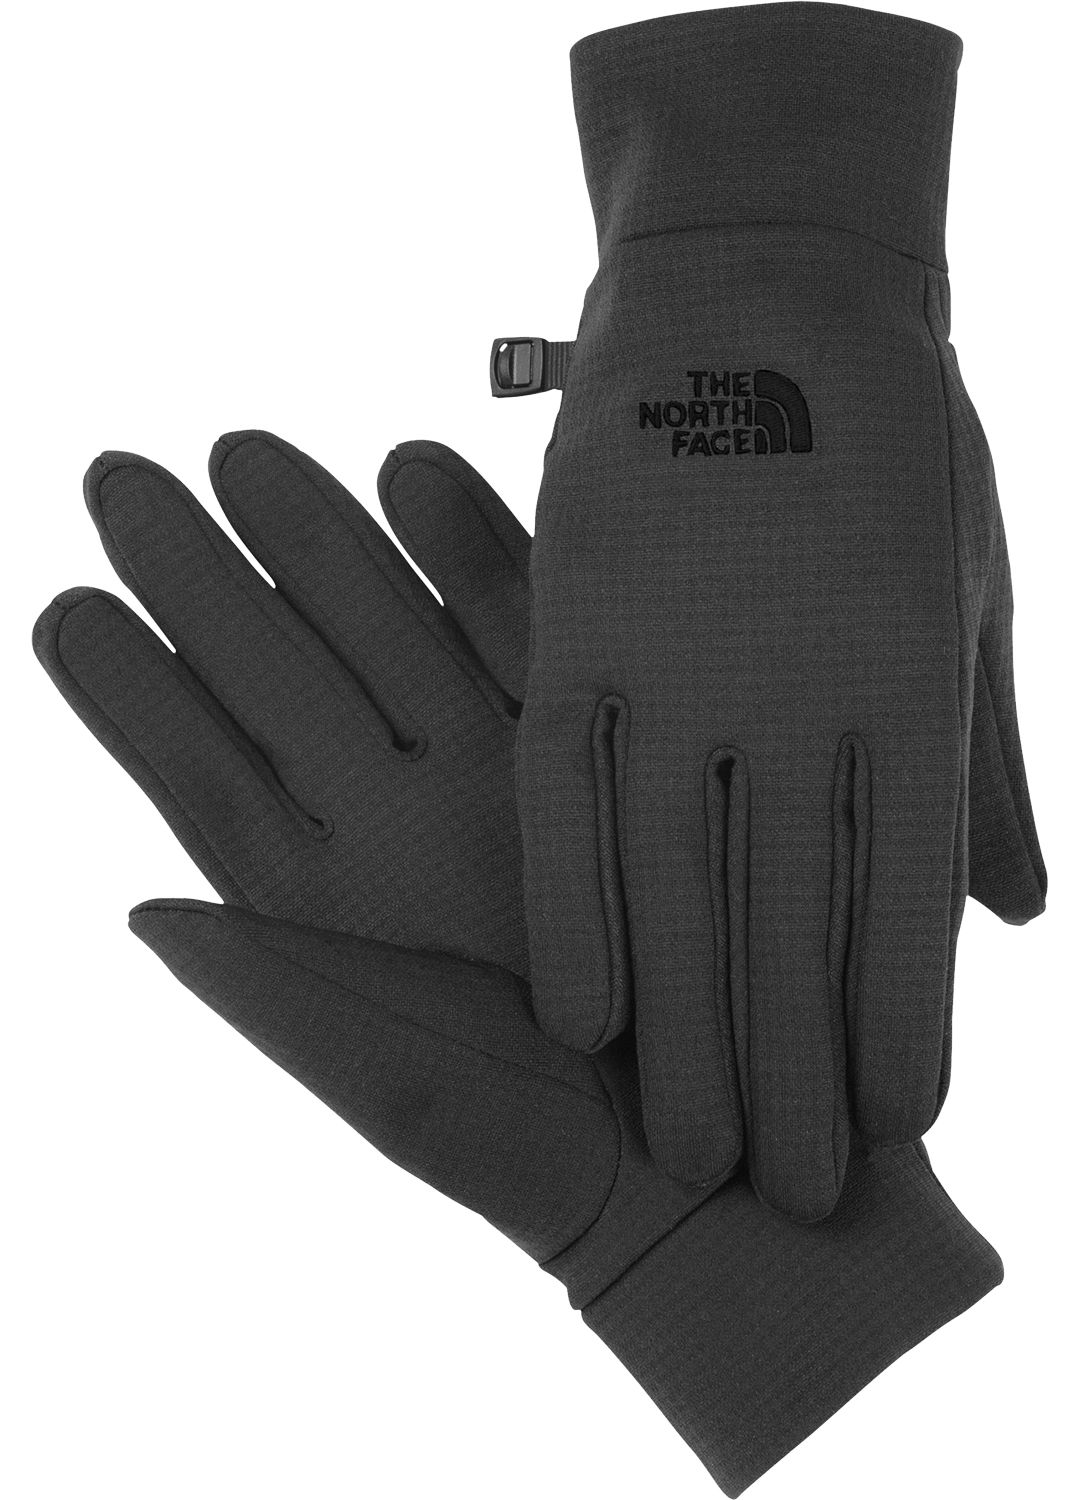 8baa70058 The North Face Unisex FlashDry Liner Gloves